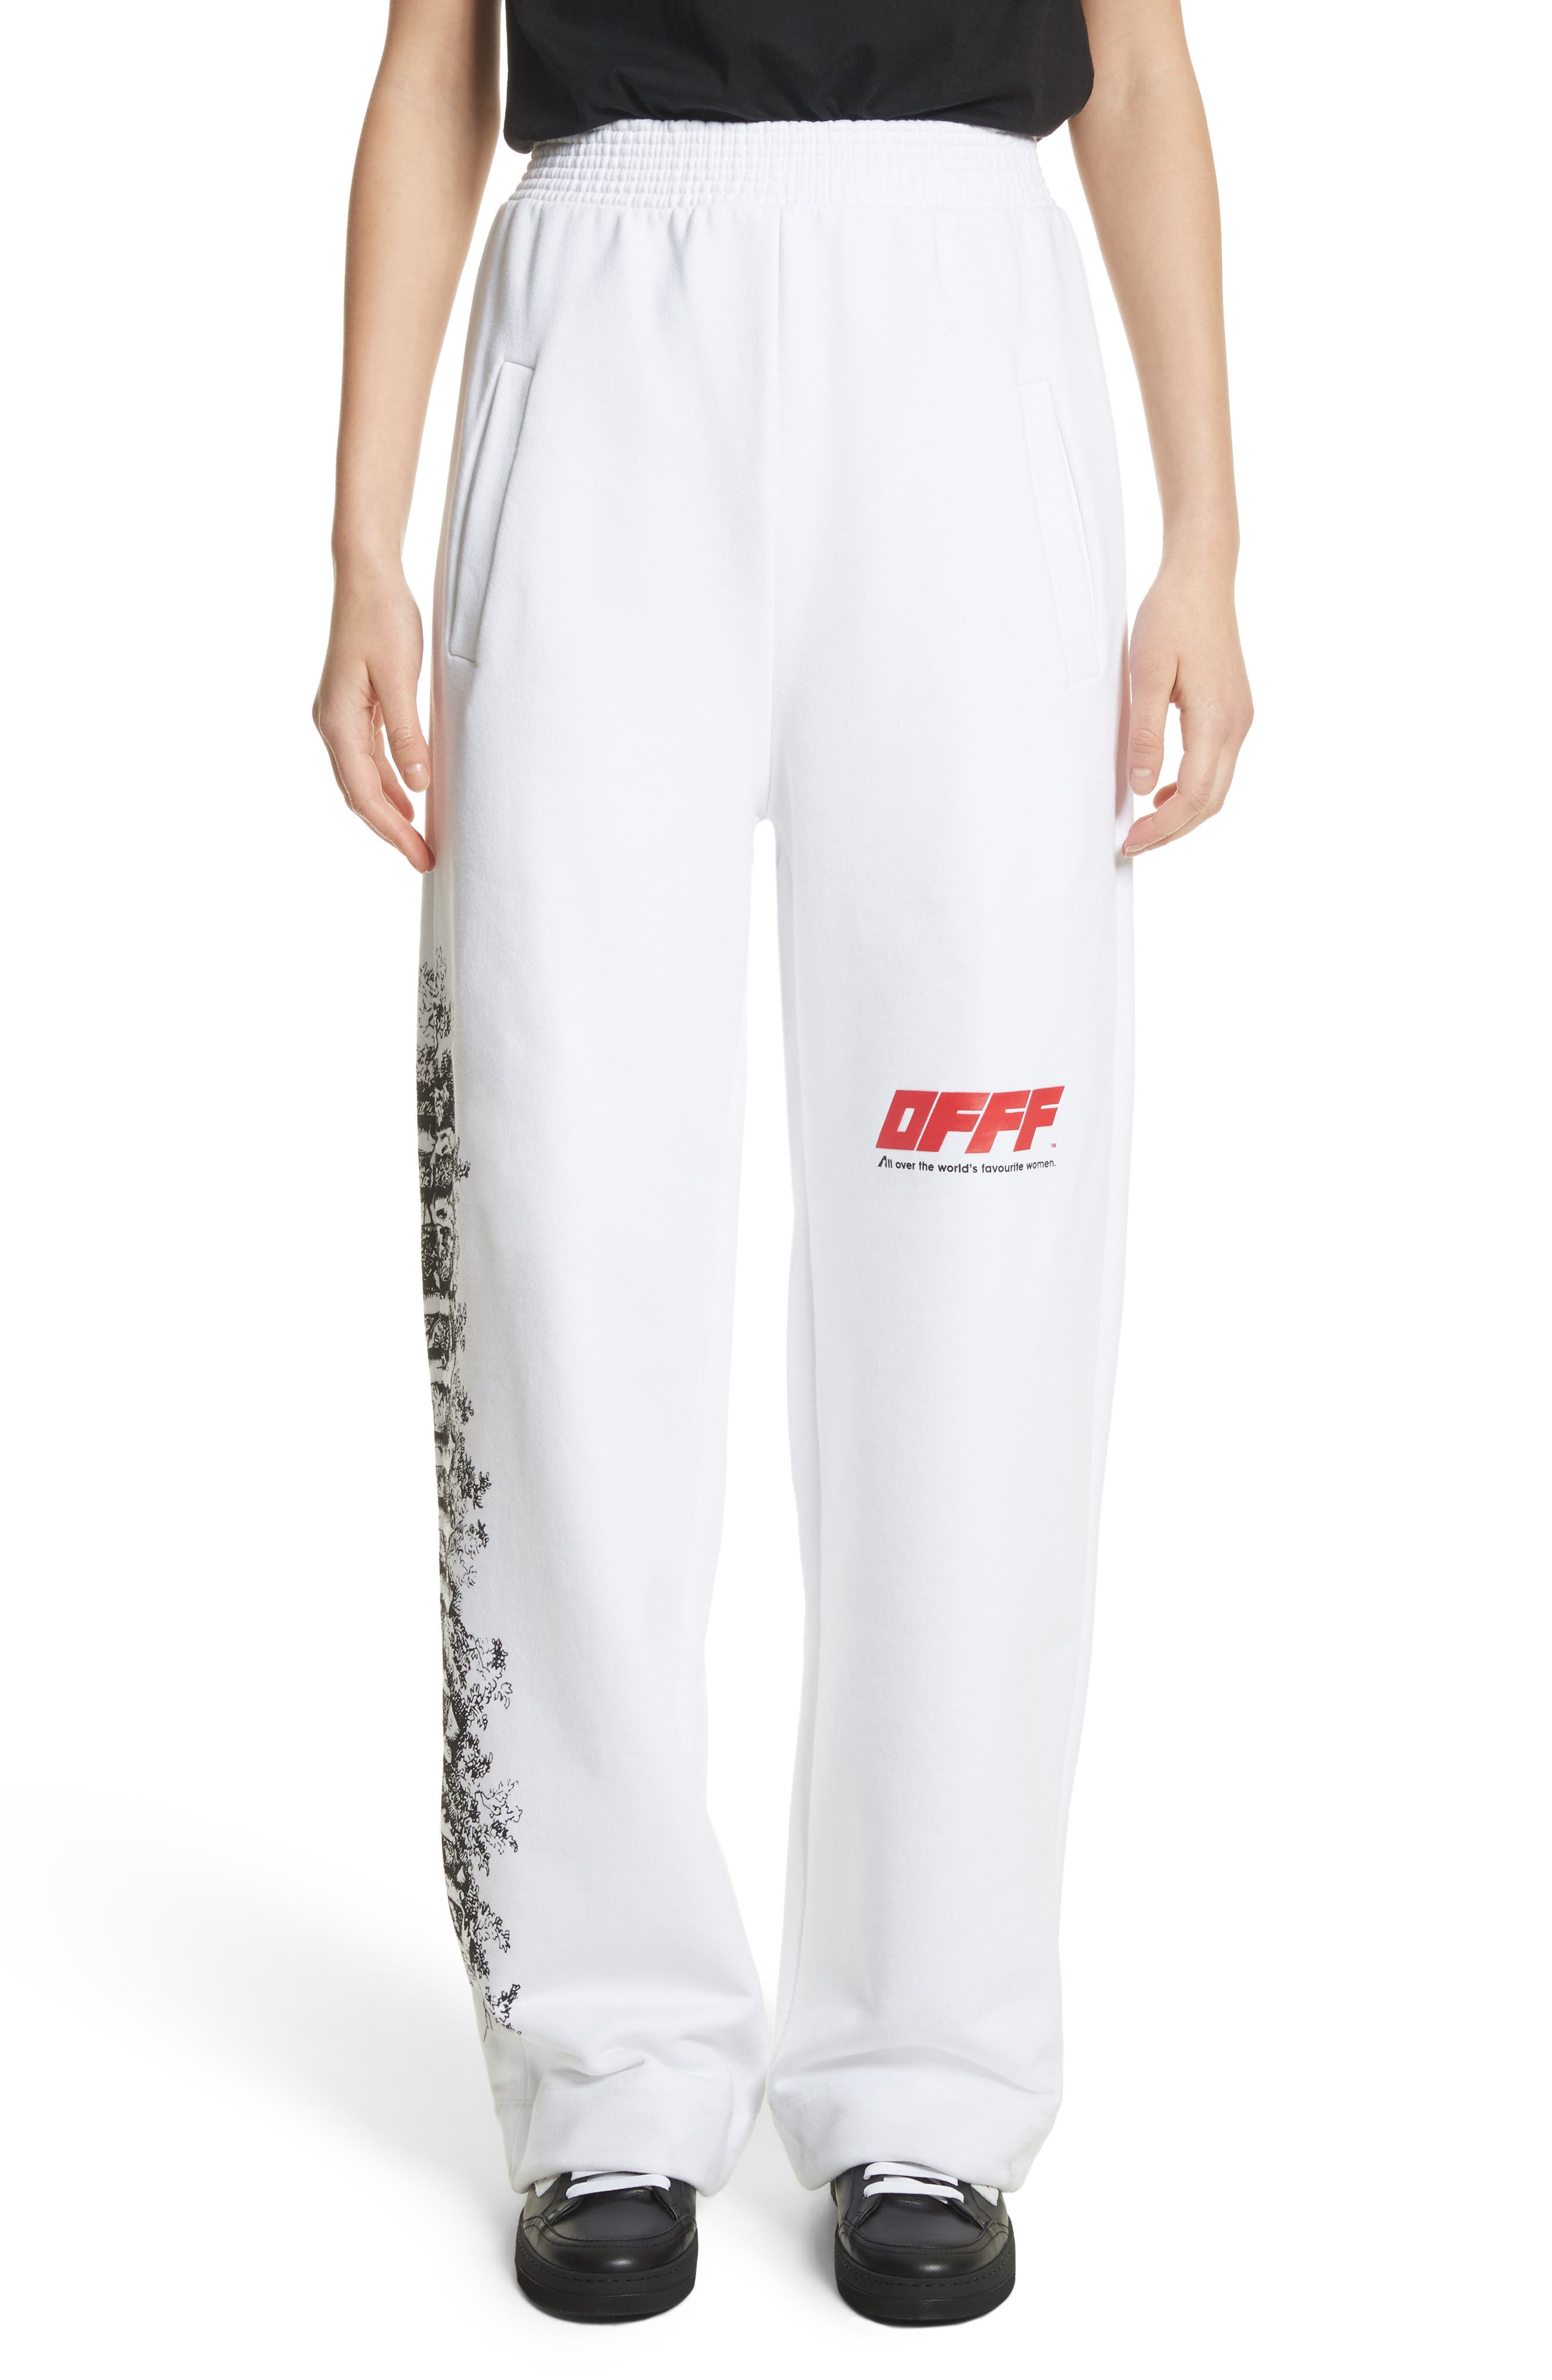 OFFF Sweatpants,                         Main,                         color, White Red